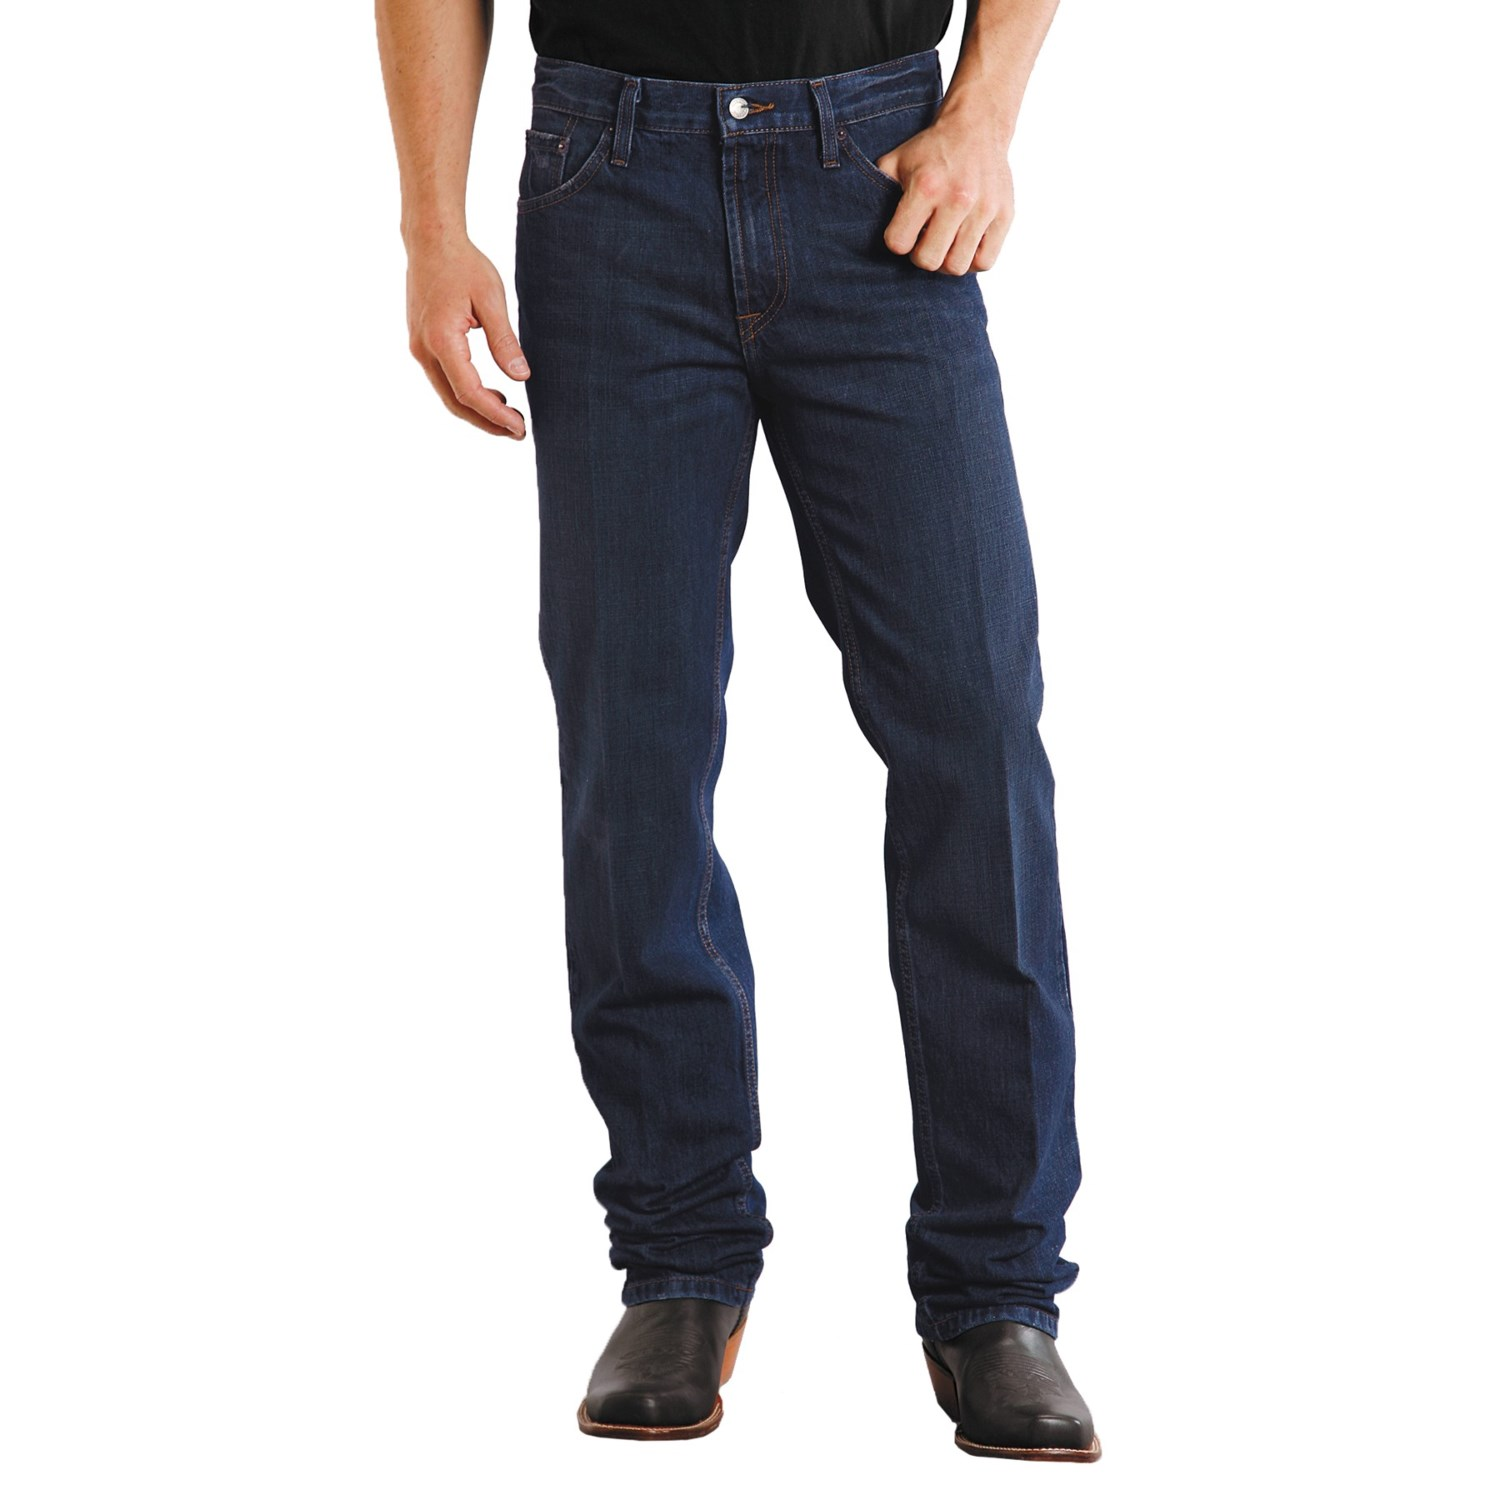 Hey guys, so I'm looking for slim or tapered skinny jeans. I want that tight look but its hard for me to find the right fitting jeans as a guy with somewhat bigger thighs.